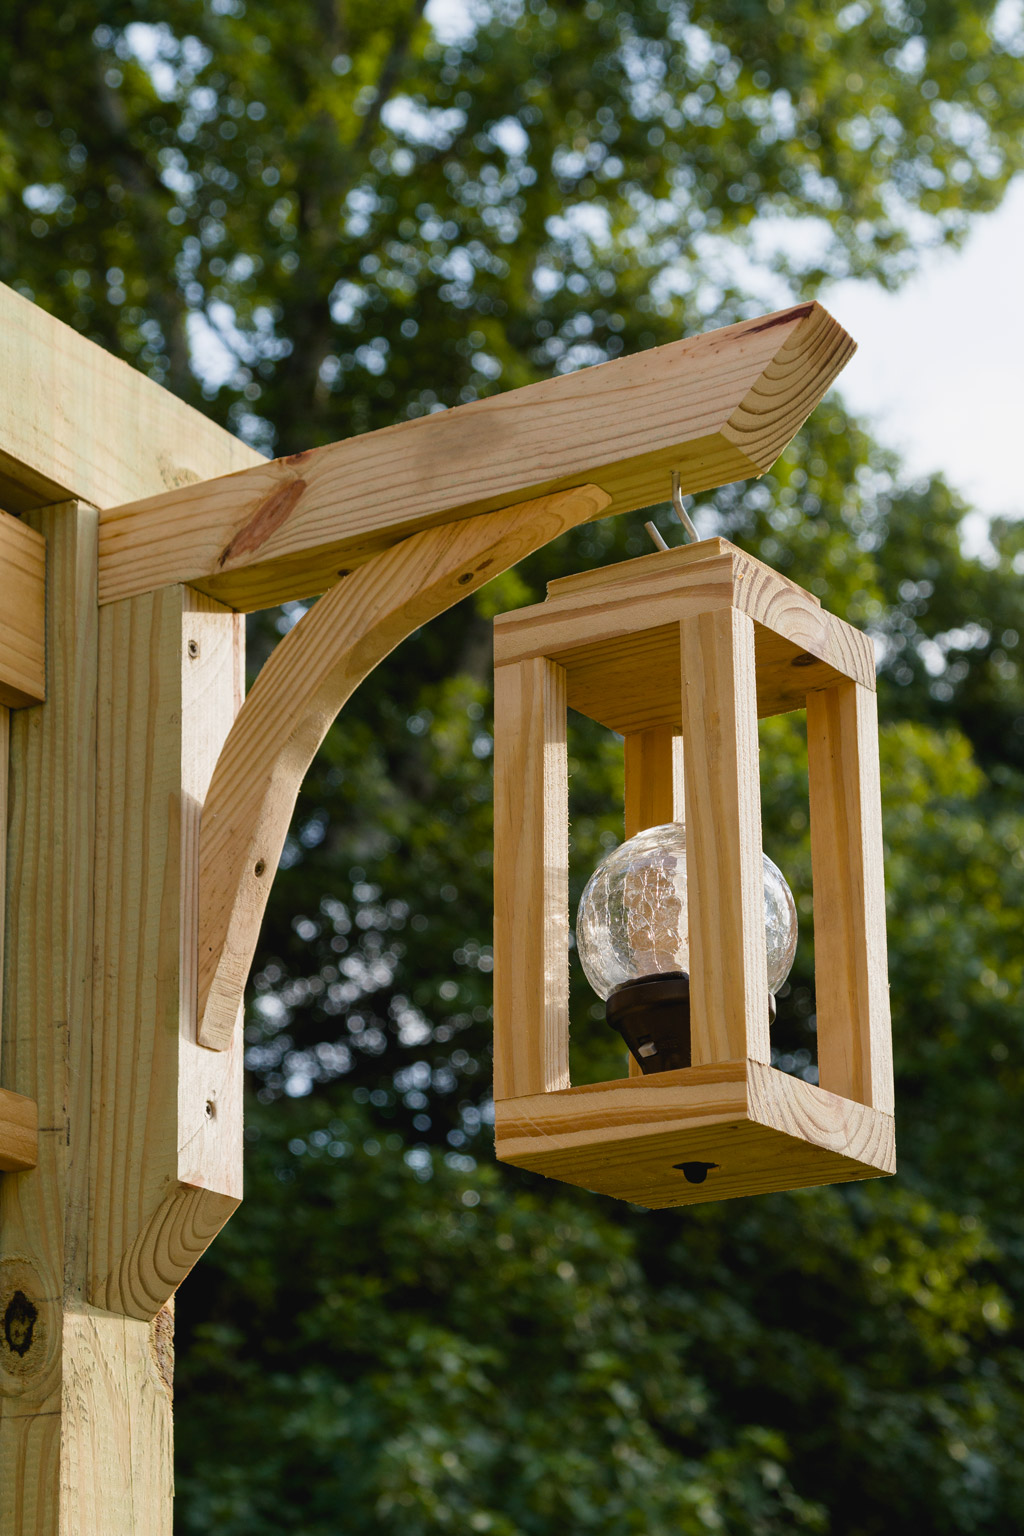 Wooden Lanterns With Solar Lights Learn How To Make One In Just Minutes